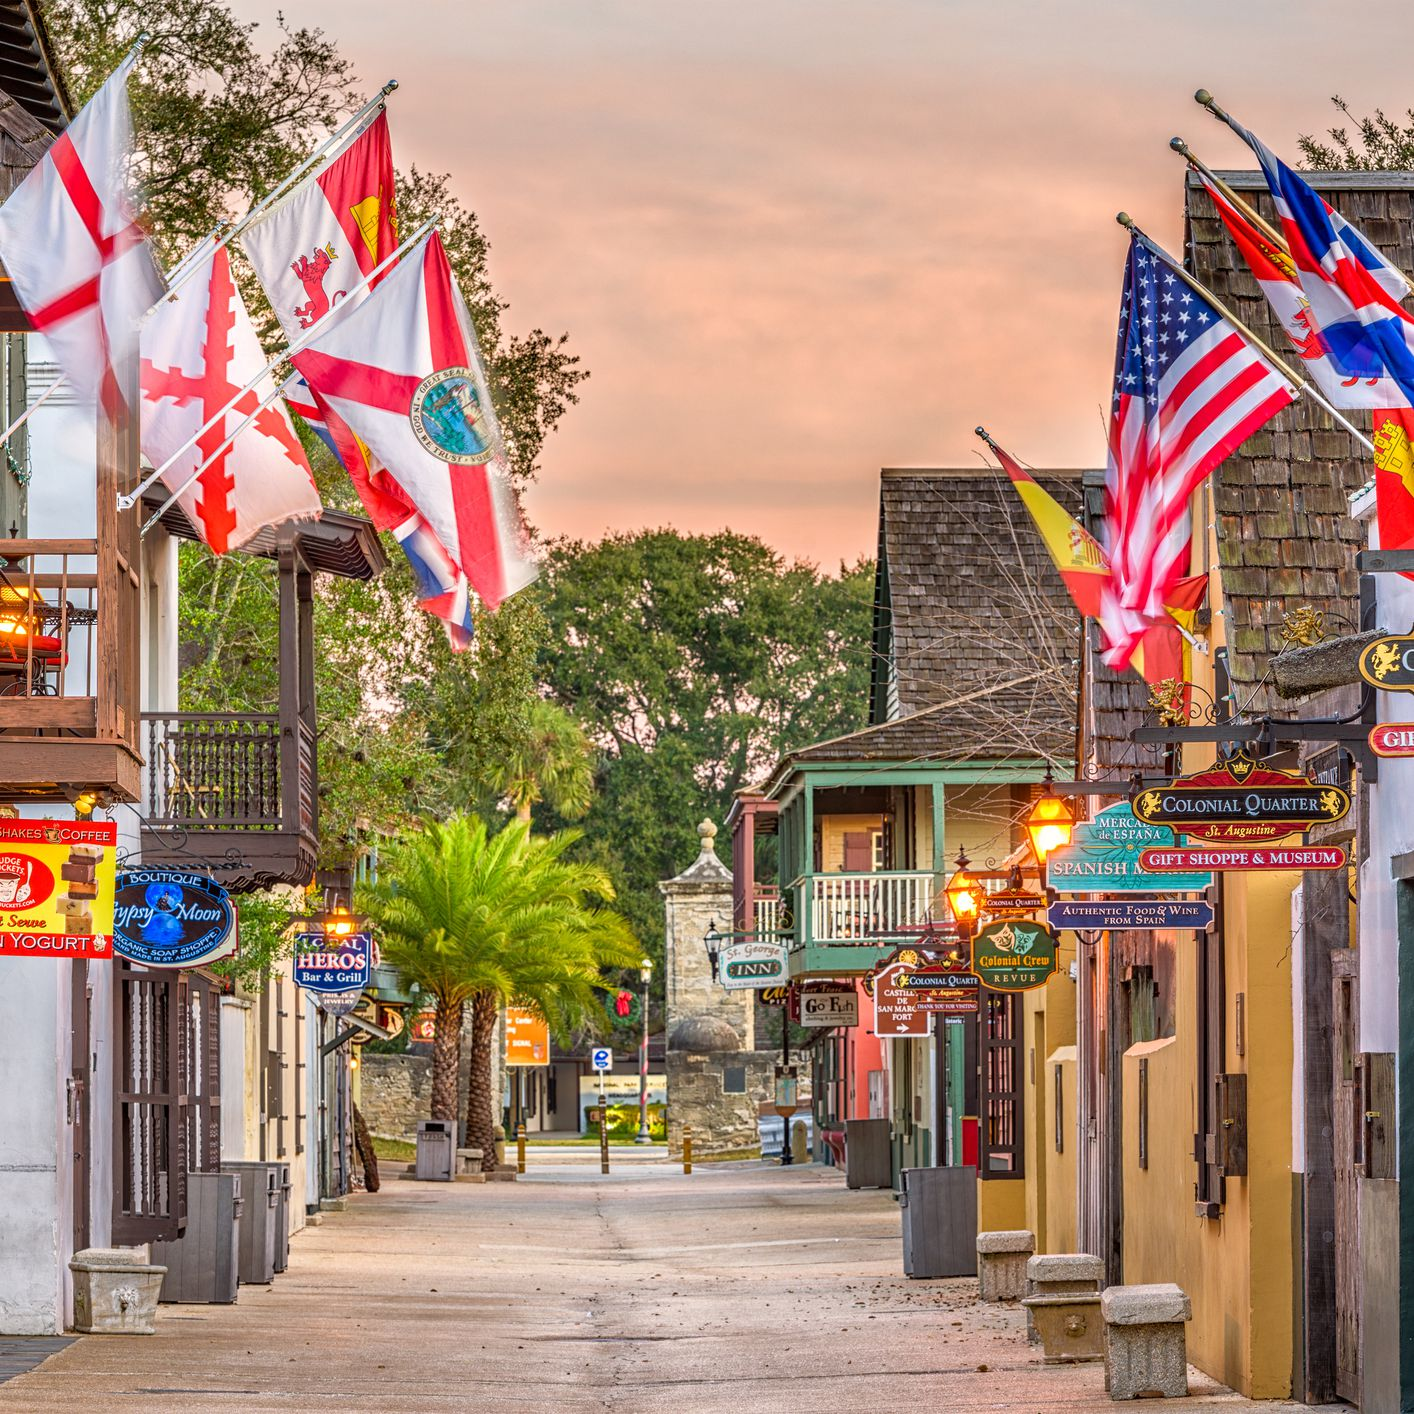 The Top 14 Things to Do in St. Augustine